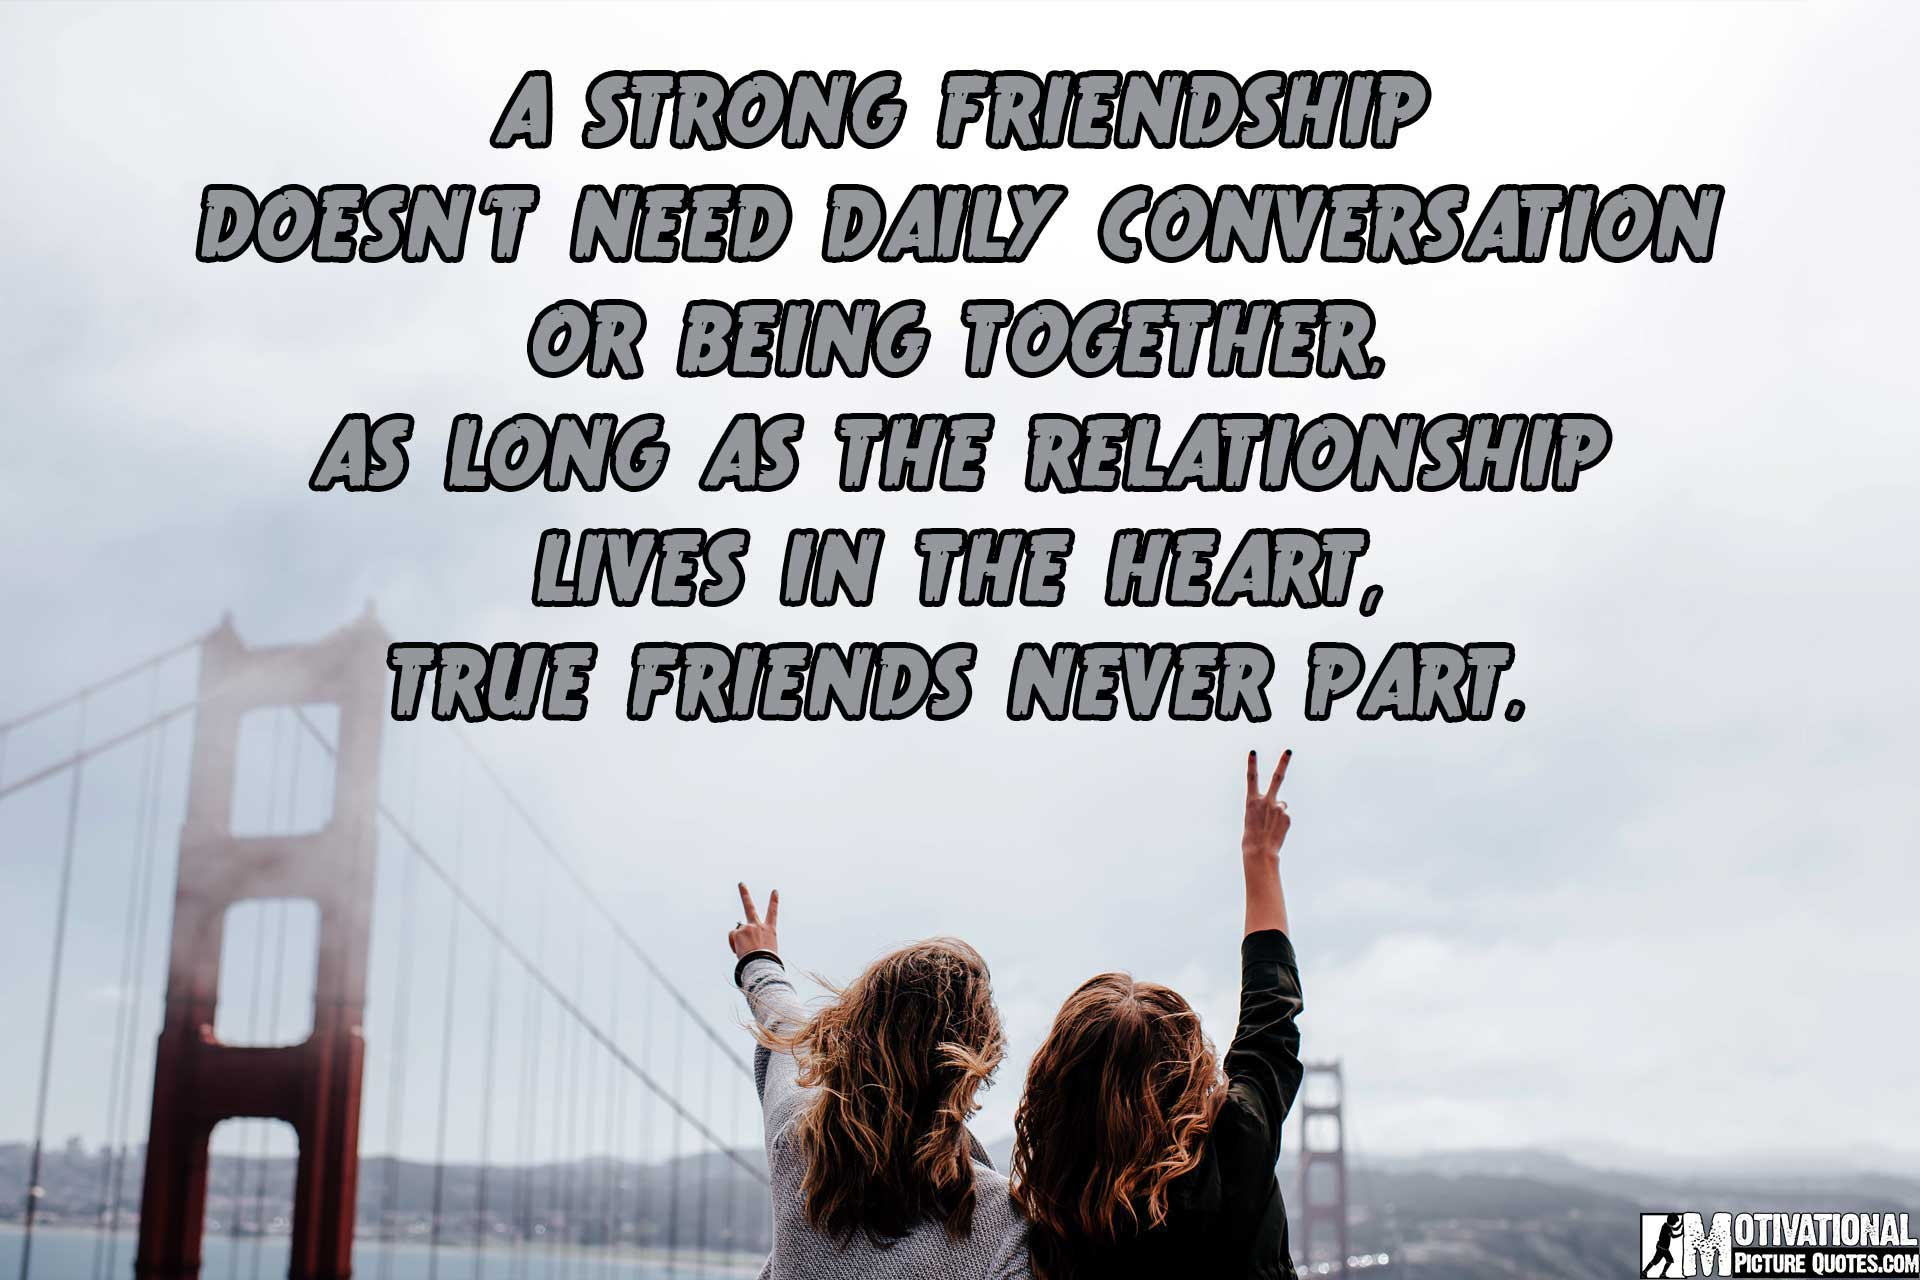 Quotes And Images About Friendship 25 Inspirational Friendship Quotes Images  Free Download